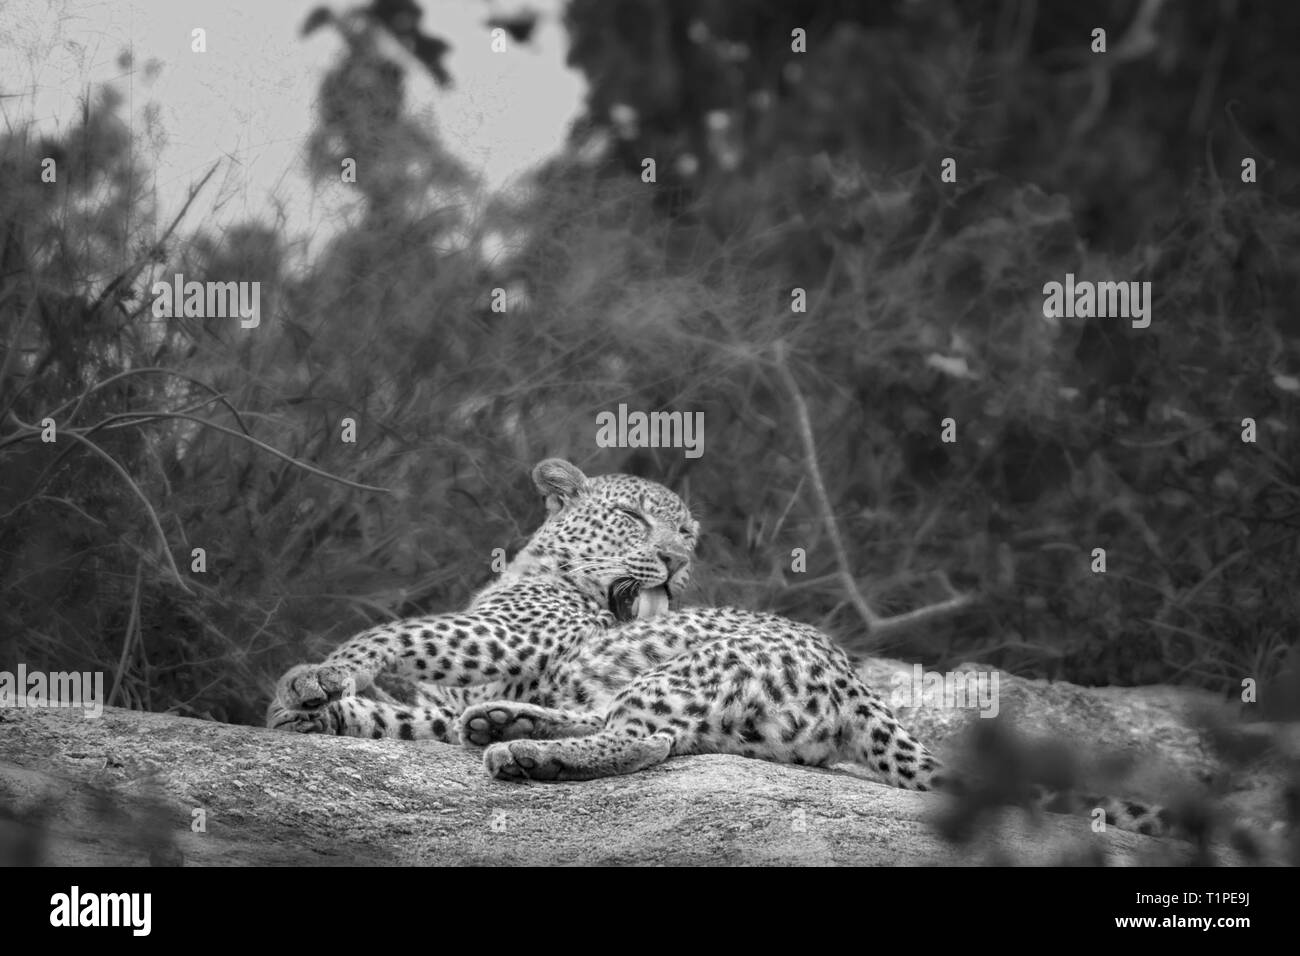 Leopard grooming and licking in Kruger National park, South Africa ; Specie Panthera pardus family of Felidae - Stock Image